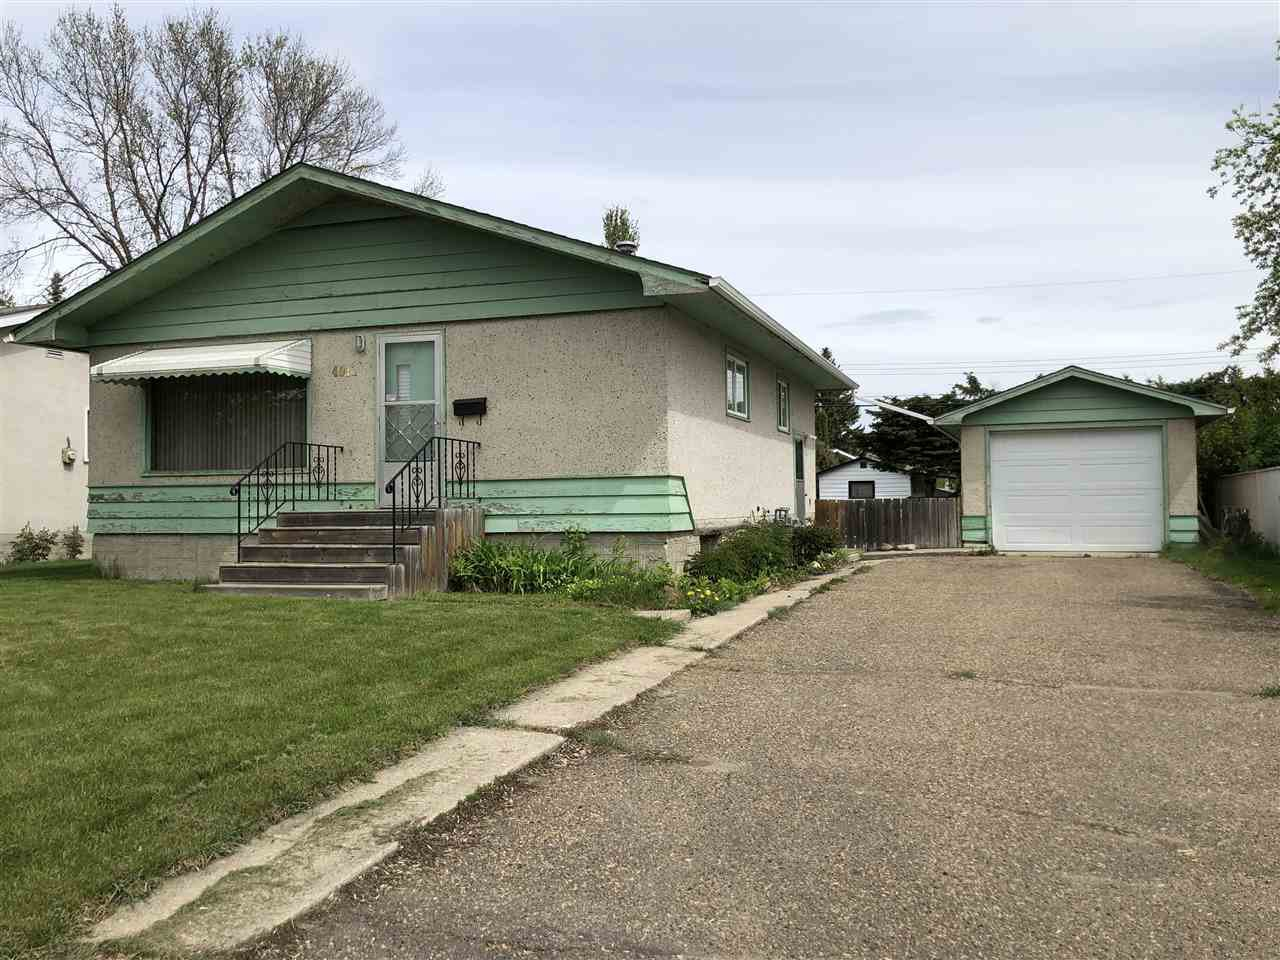 Main Photo: 4011 55 Street: Wetaskiwin House for sale : MLS®# E4198585